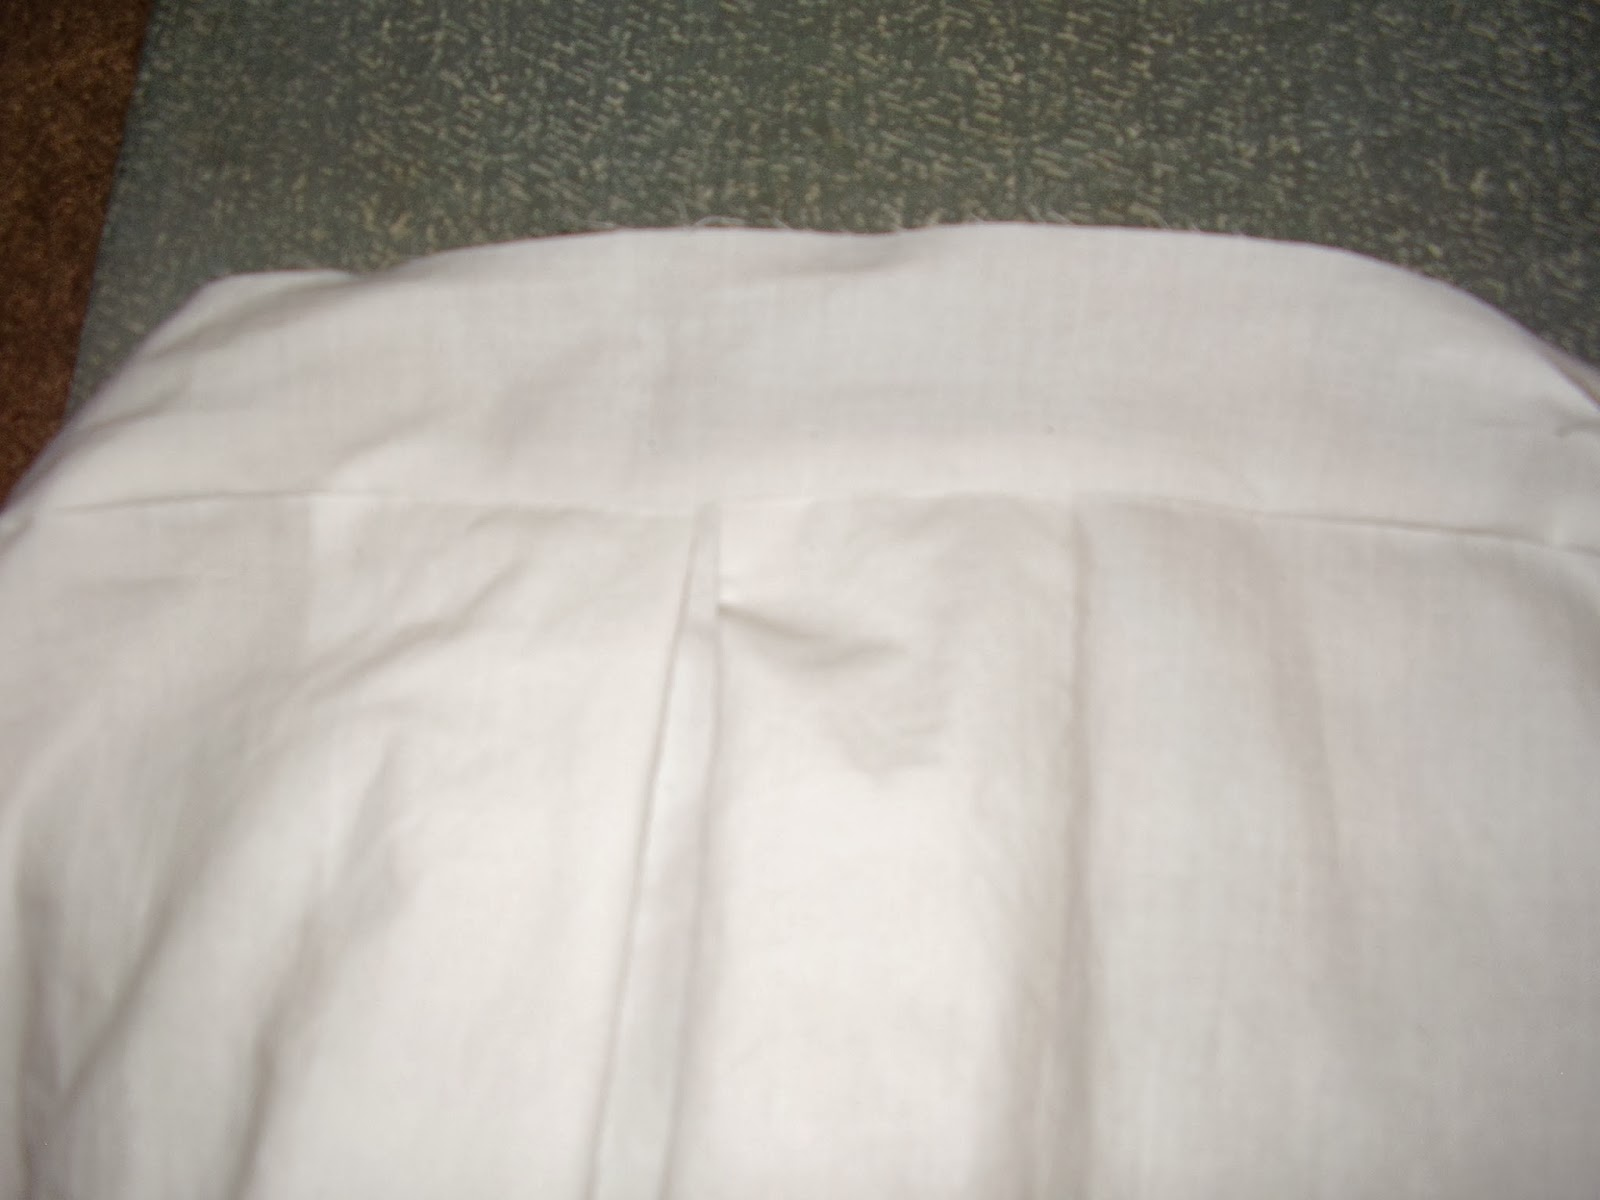 Close-up of chemise upper band.